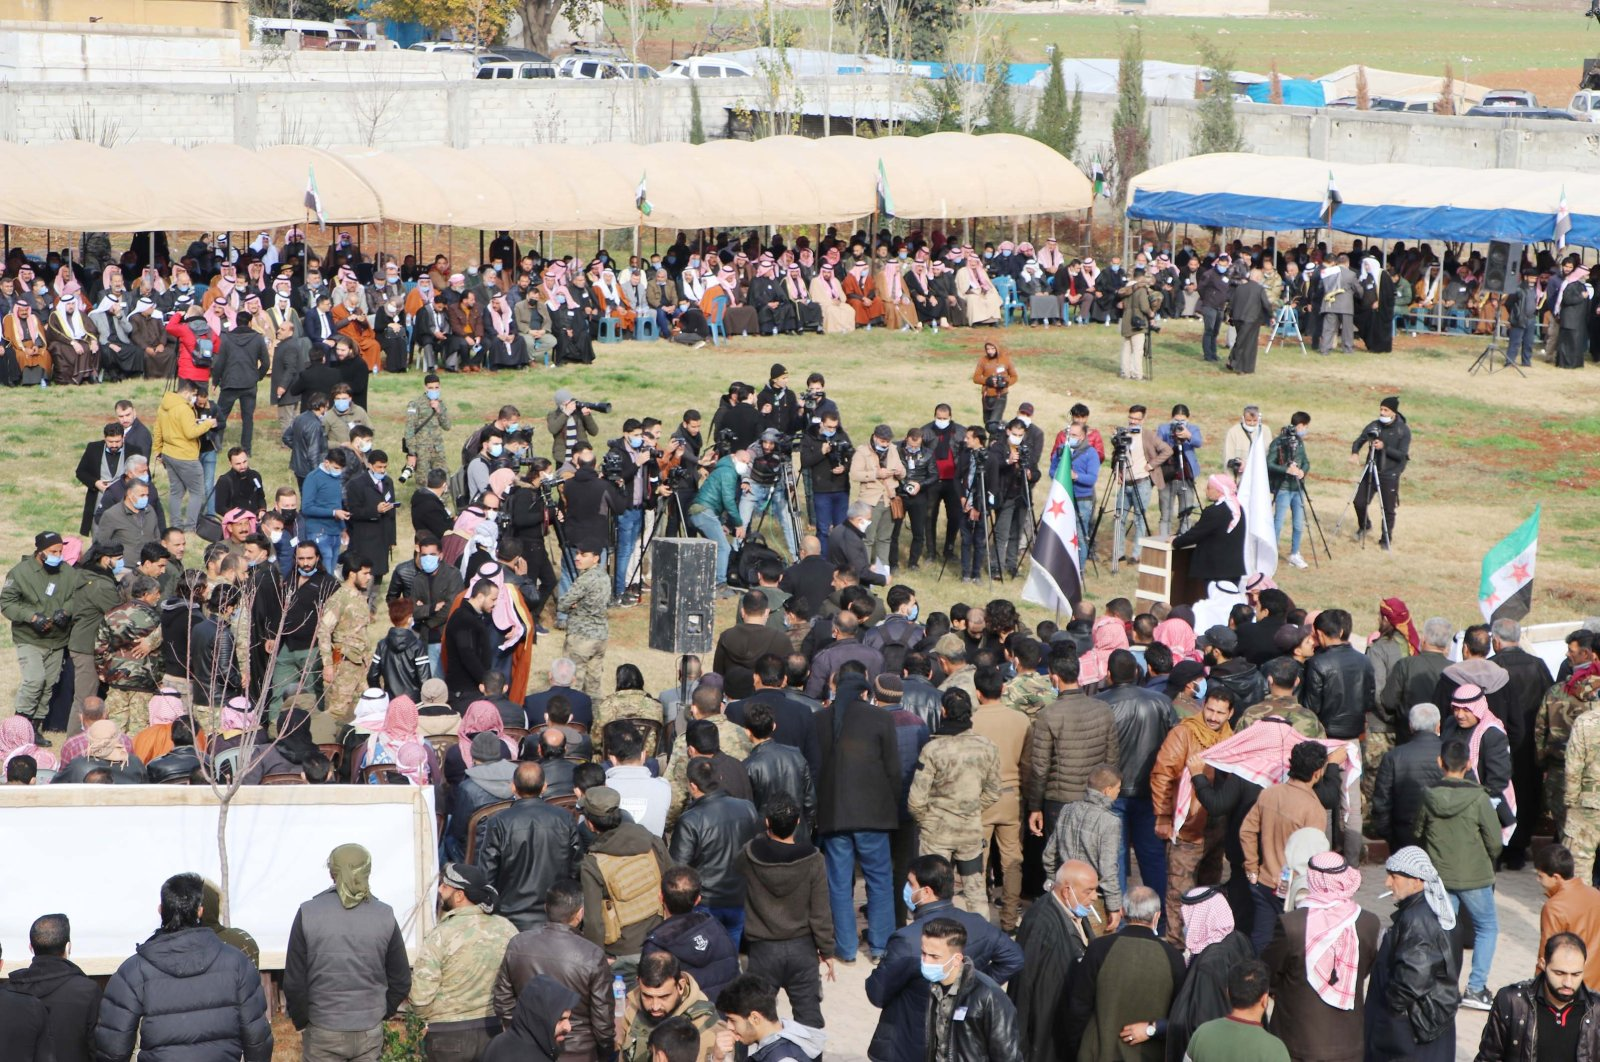 Syrian tribes and clans attend a major meeting in the city of Azaz, northern Syria, Dec. 21, 2020. (DHA Photo)